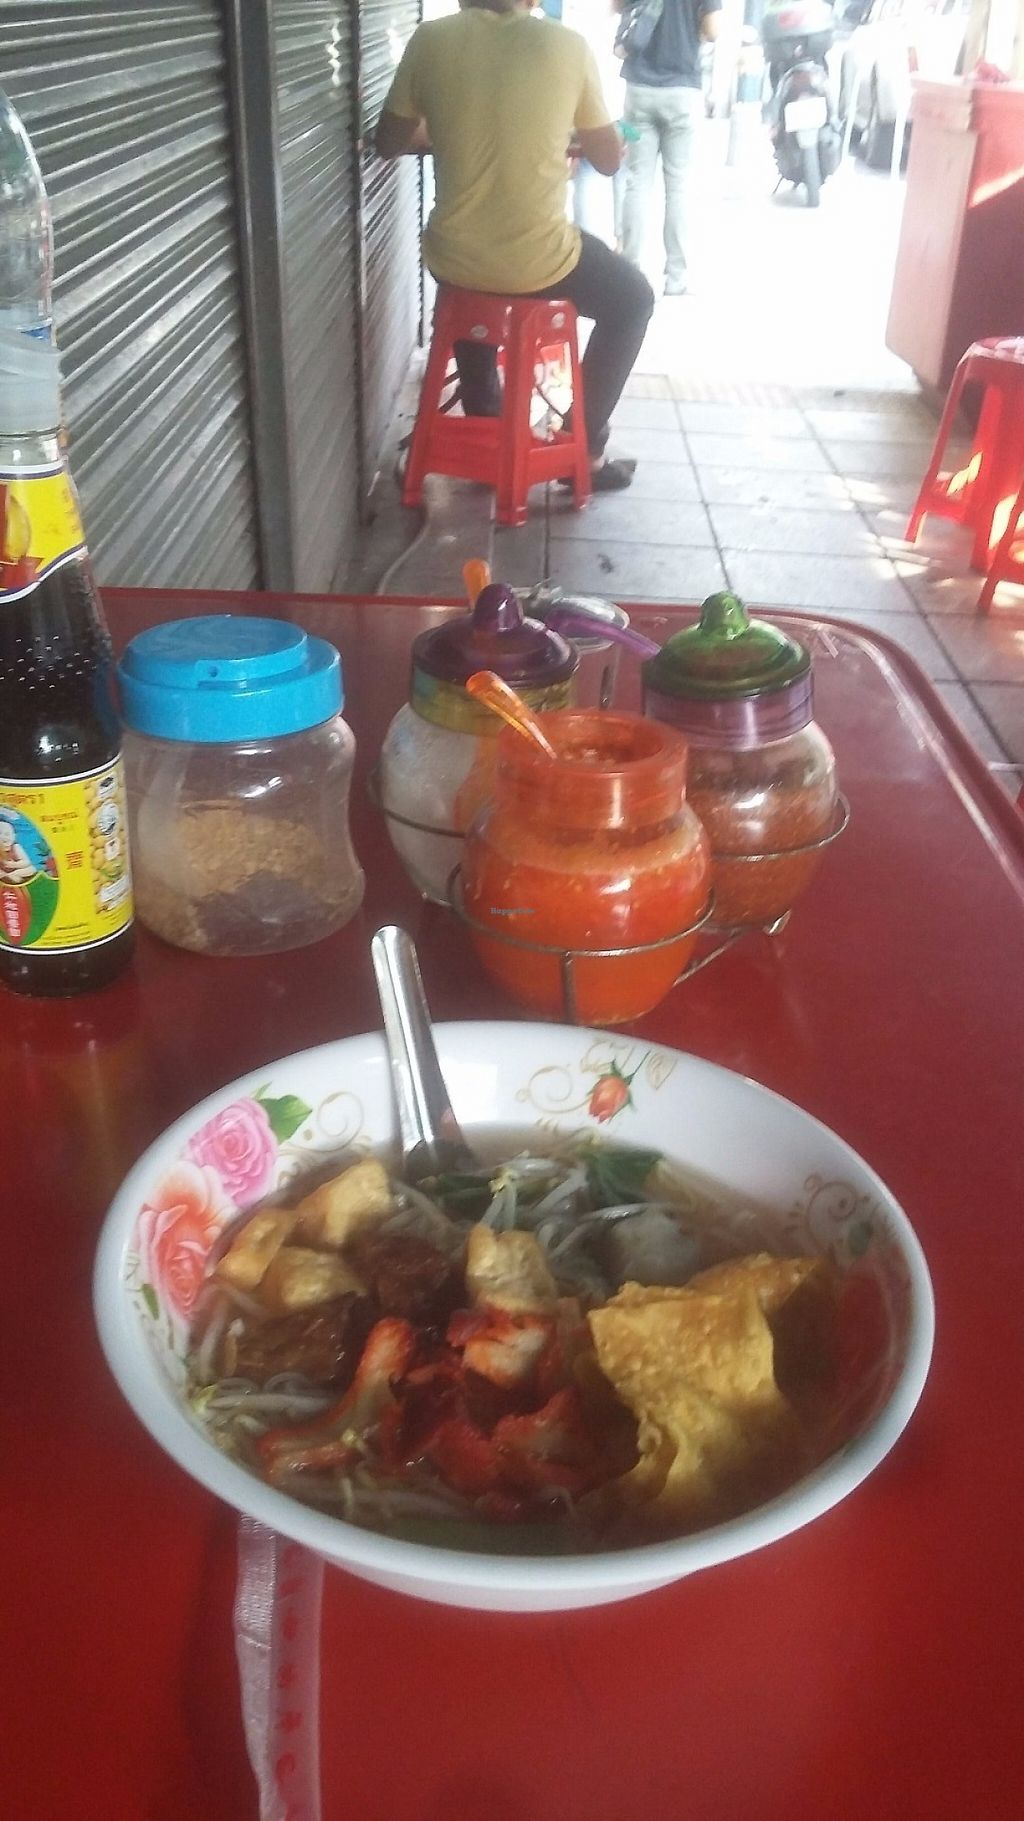 """Photo of Pan Road - Vegan Food Cart  by <a href=""""/members/profile/samlowry"""">samlowry</a> <br/>Tasty noodle soup with vegan """"pork"""" <br/> May 30, 2017  - <a href='/contact/abuse/image/88695/264231'>Report</a>"""